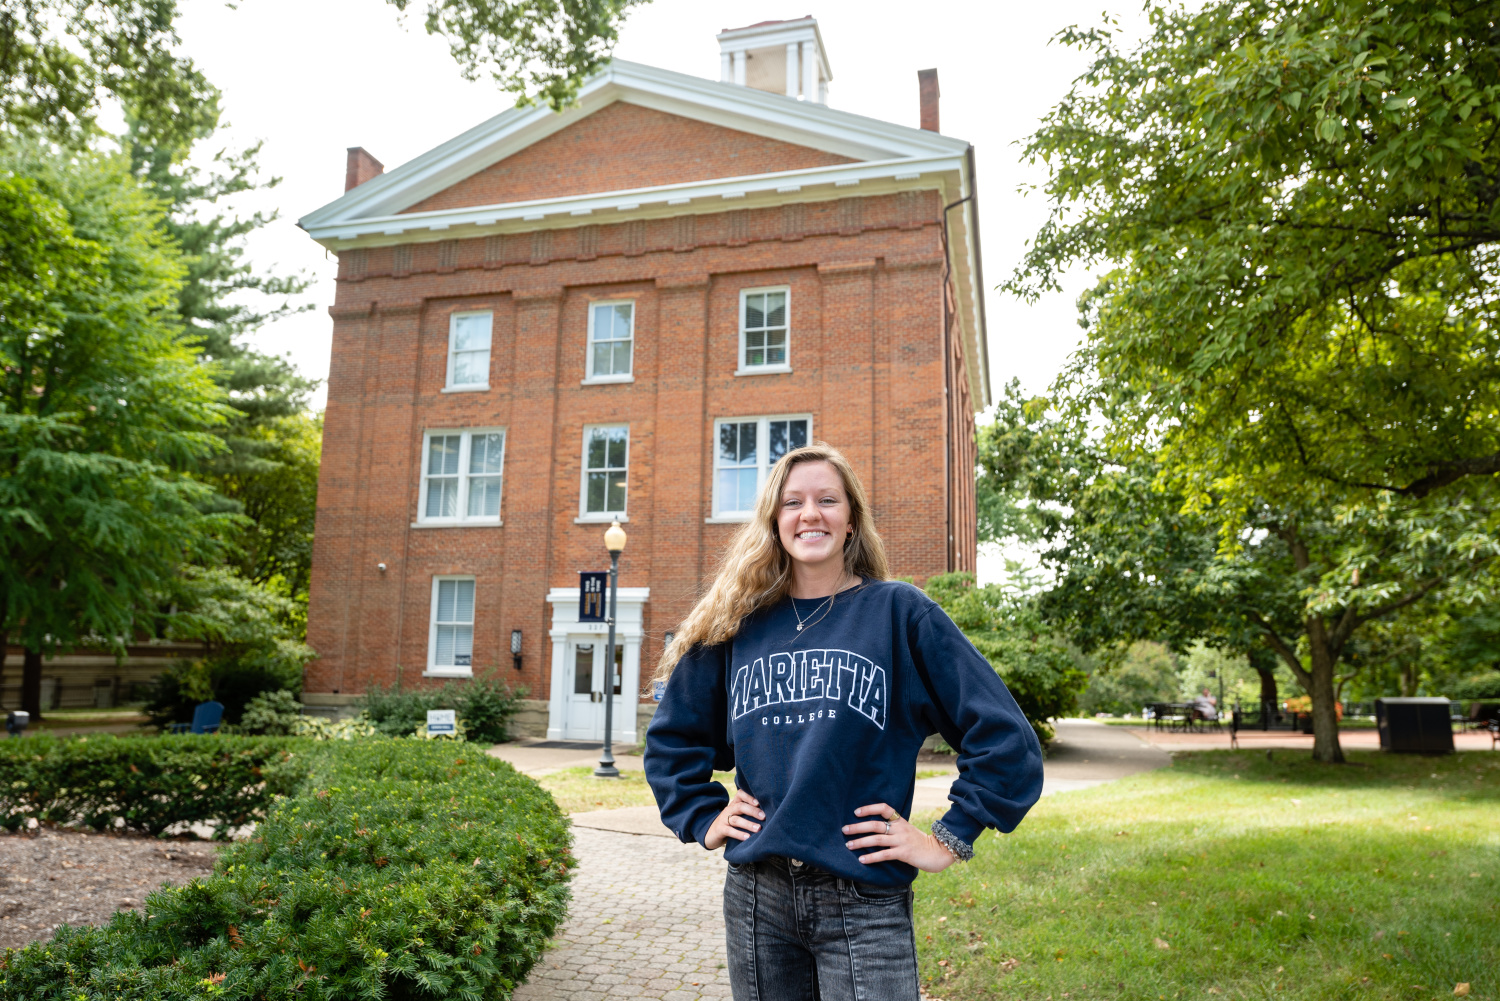 A Marietta College student poses in front of Erwin Tower